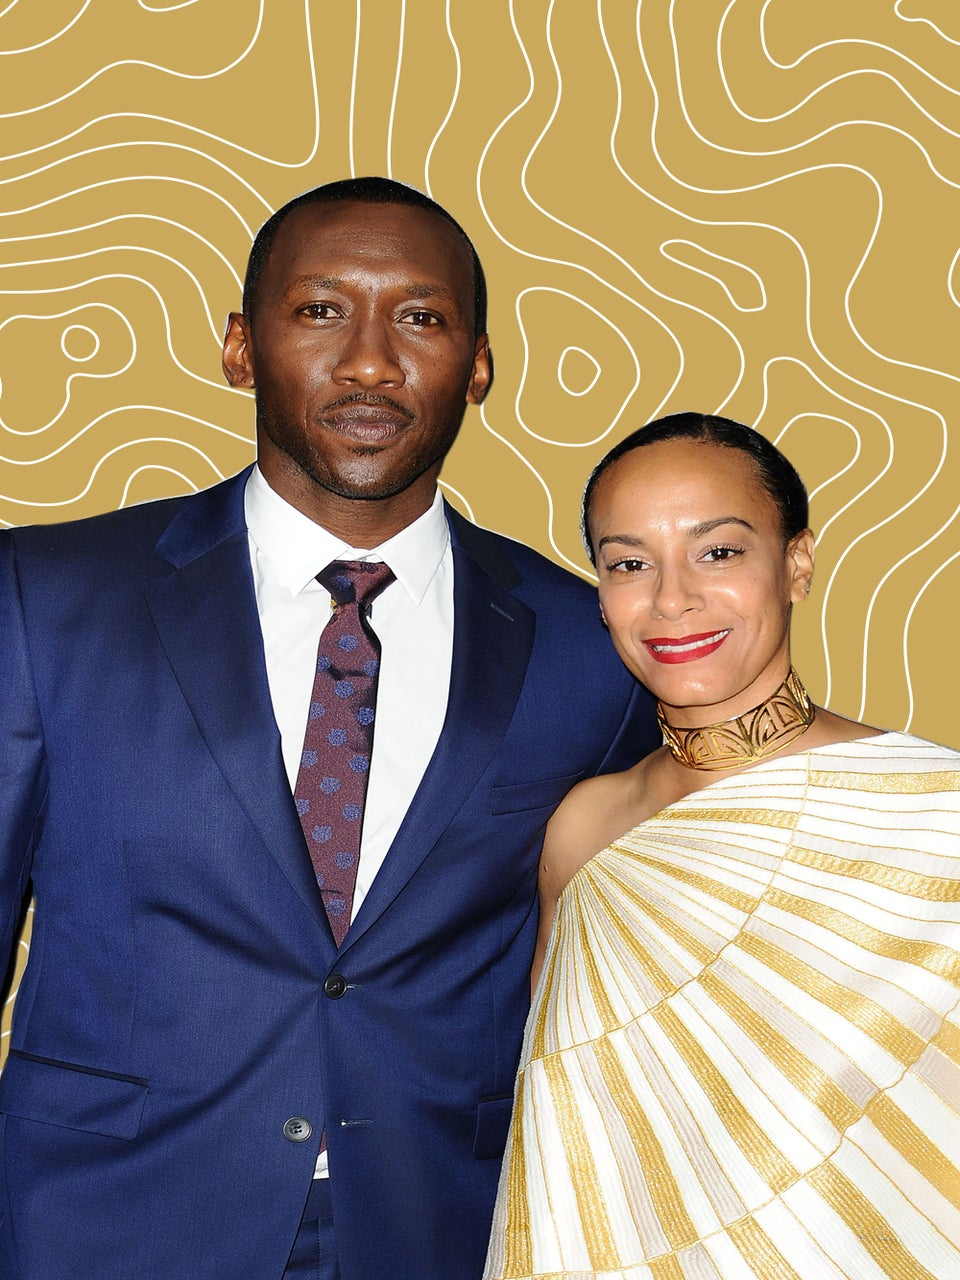 Baby On Deck: Mahershala Ali And Wife Amatus Sami-Karim Are Expecting Their First Child